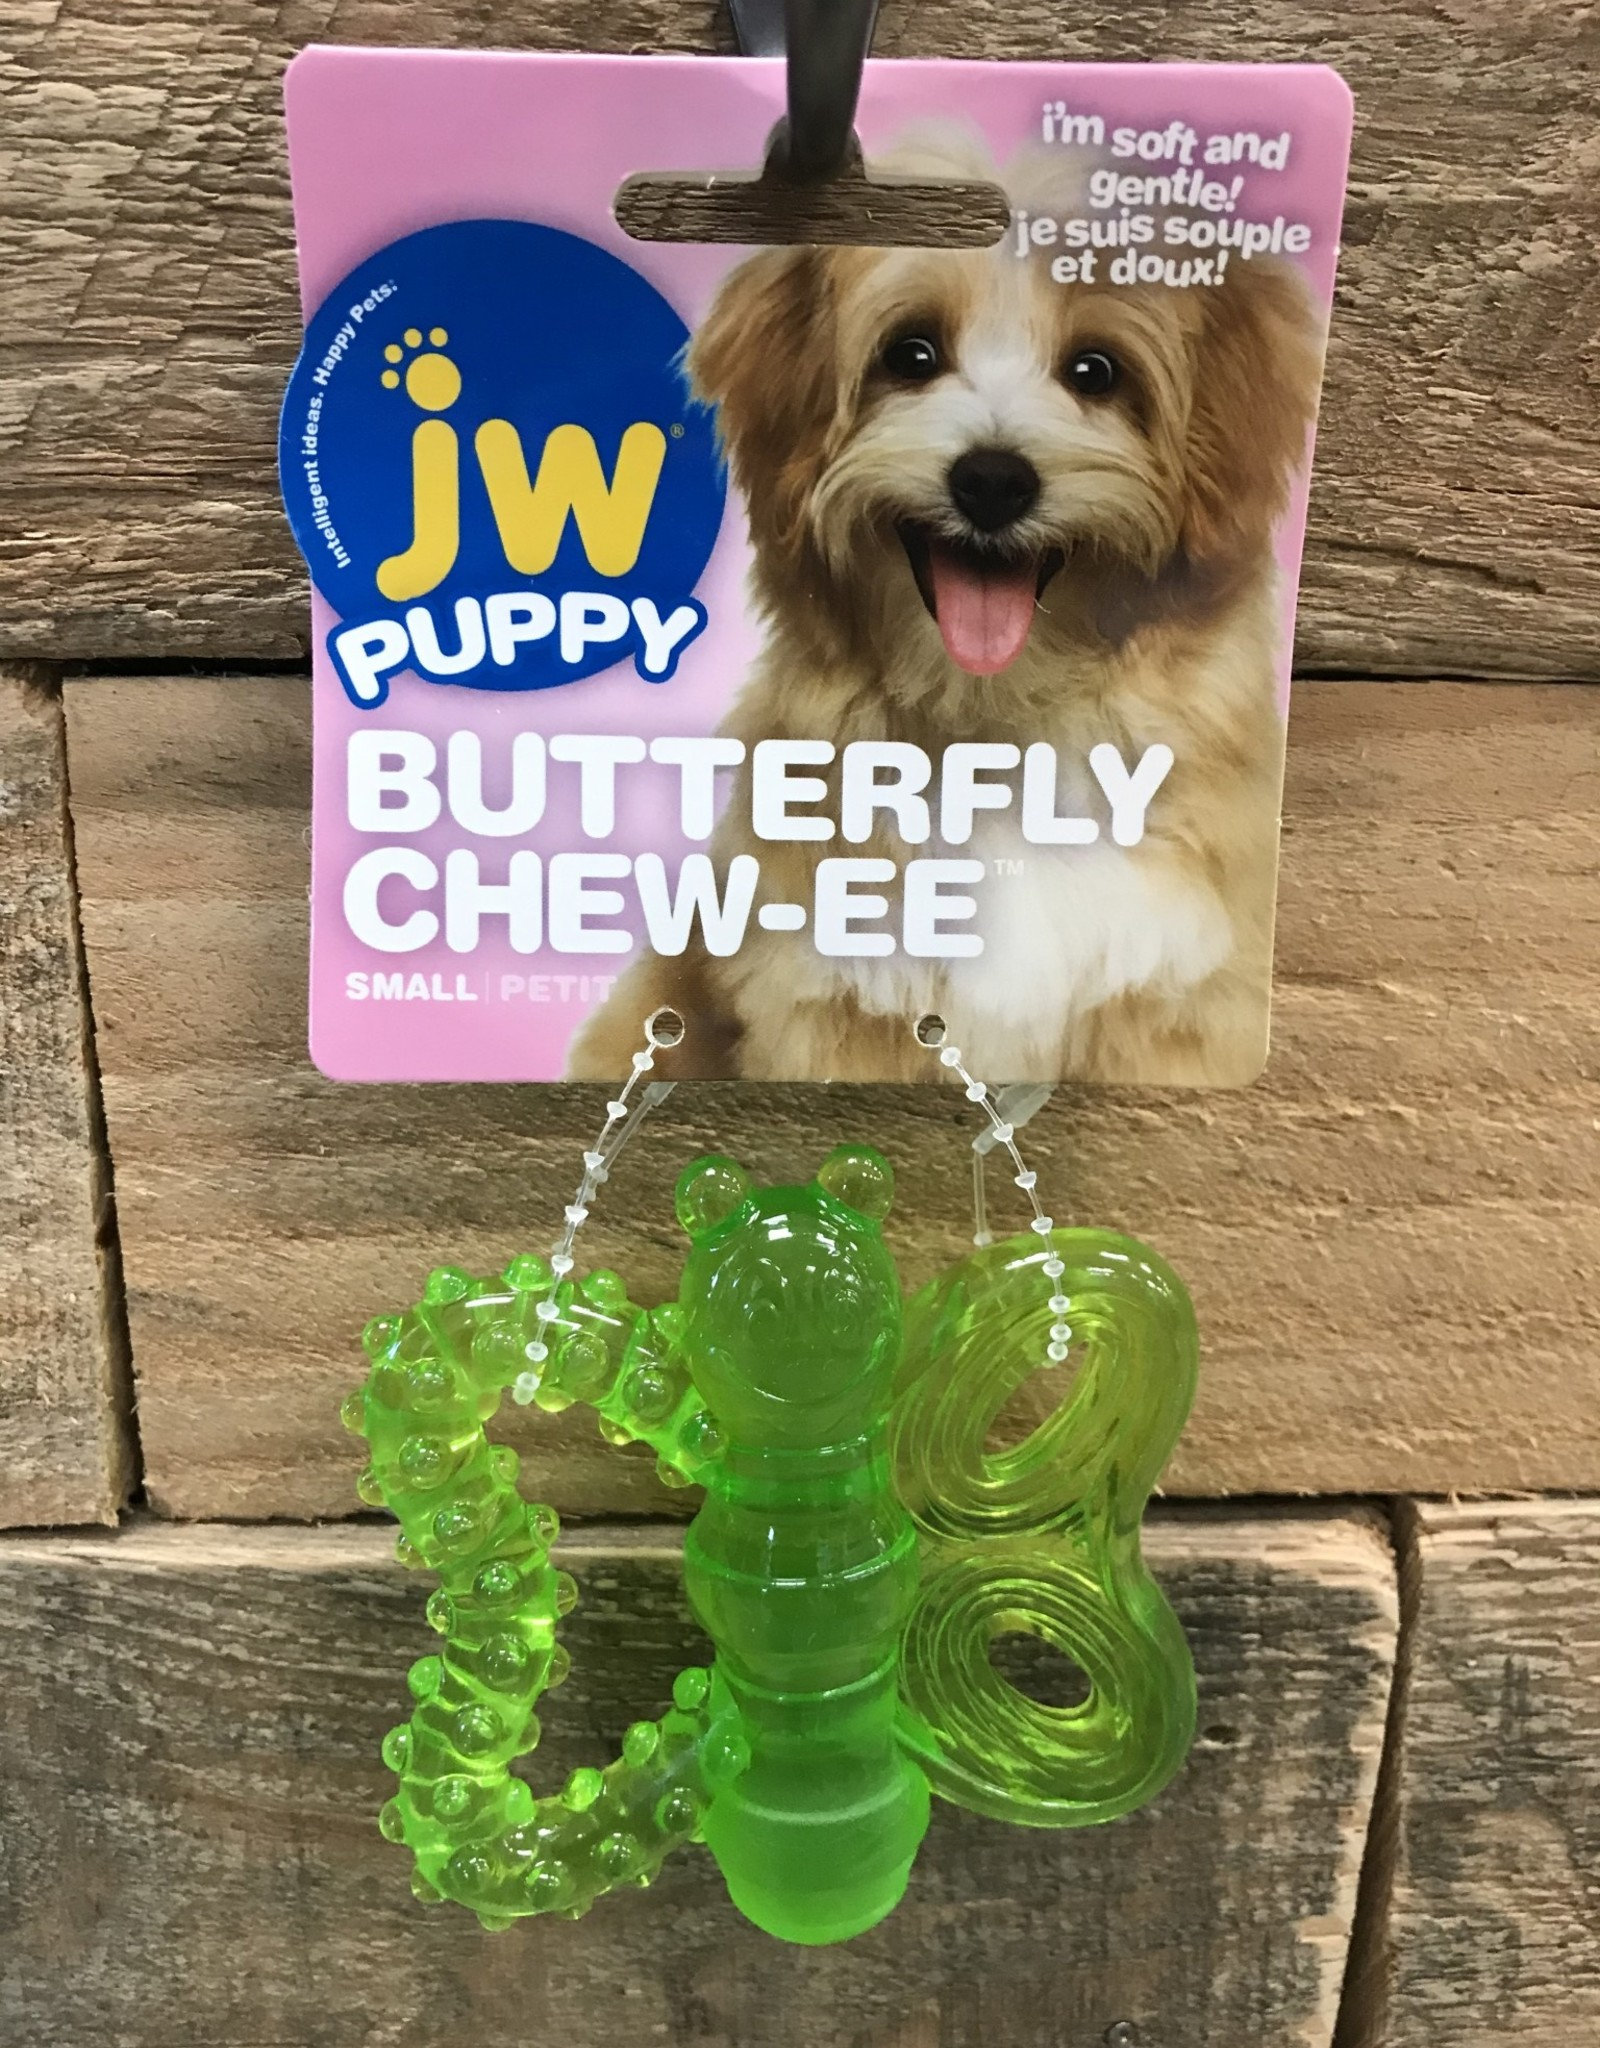 JW JW Puppy Butterfly Squeak-ee Small Assorted